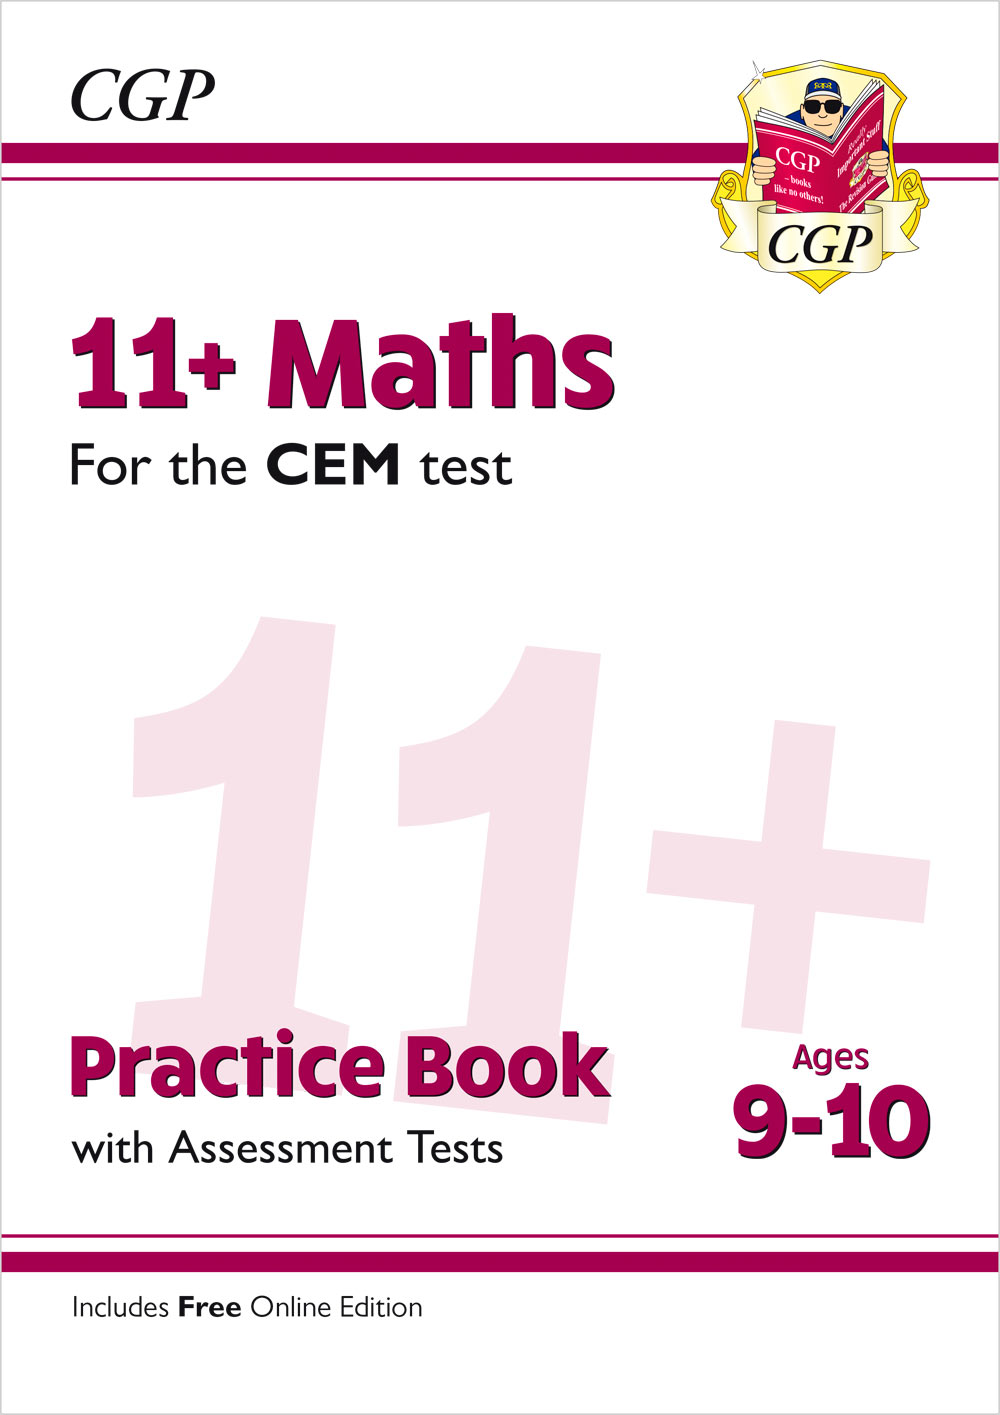 M5QDE2 - 11+ CEM Maths Practice Book & Assessment Tests - Ages 9-10 (with Online Edition)